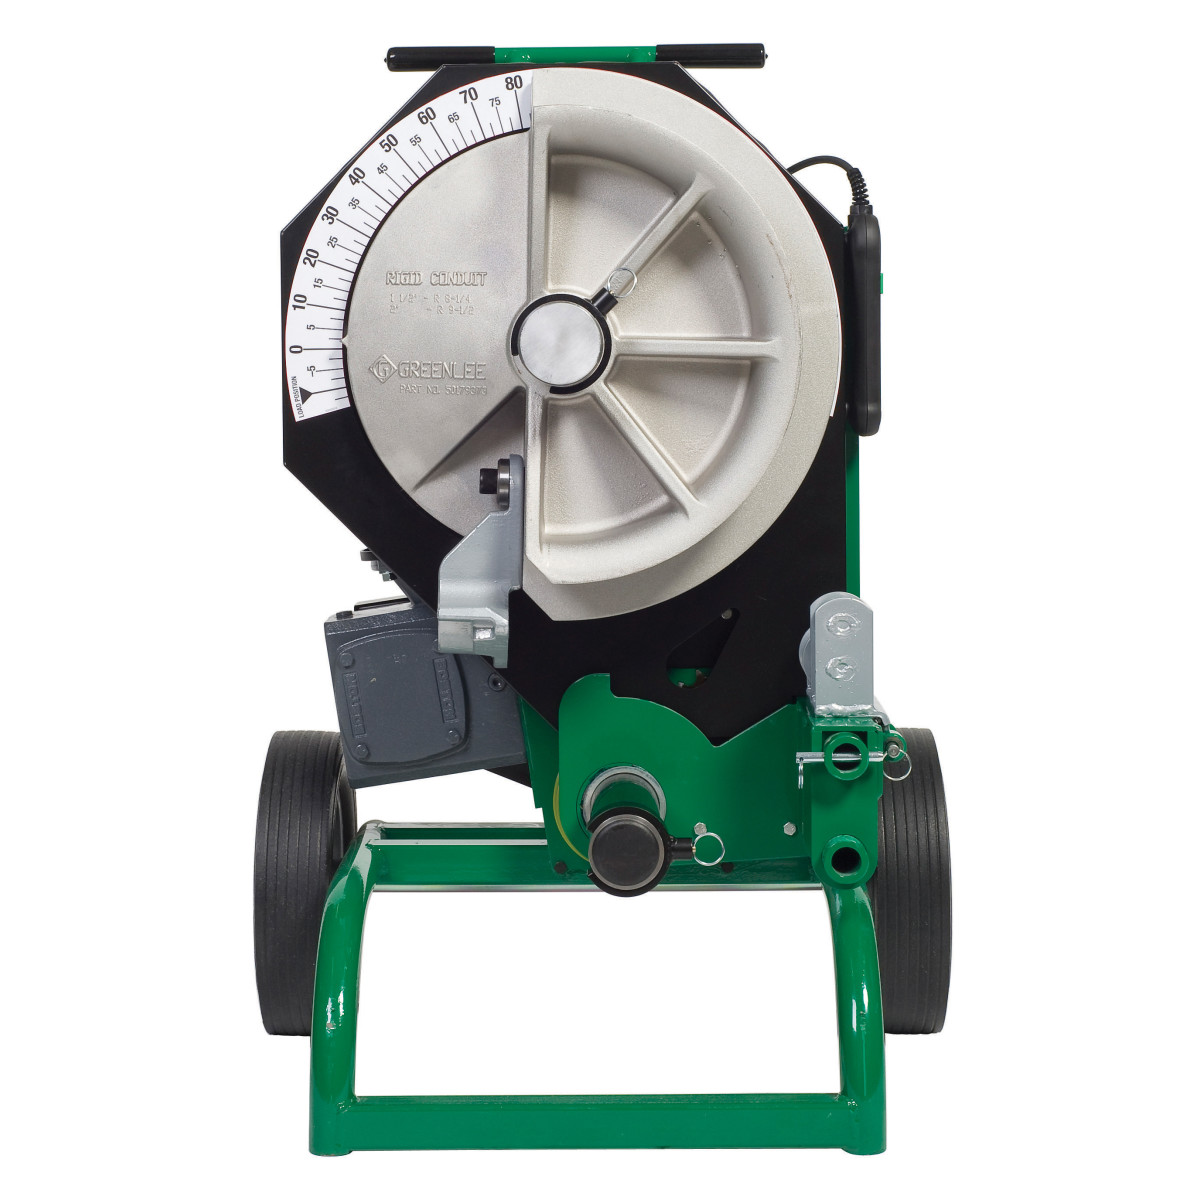 GRE555CXRS ELECTRIC BENDER CX W/SINGLE RIGID SHOES;Greenlee® 555CXRS Electric Bender With Single Rigid Shoes, 1/2 to 2 in Rigid Capacity, Tool Only